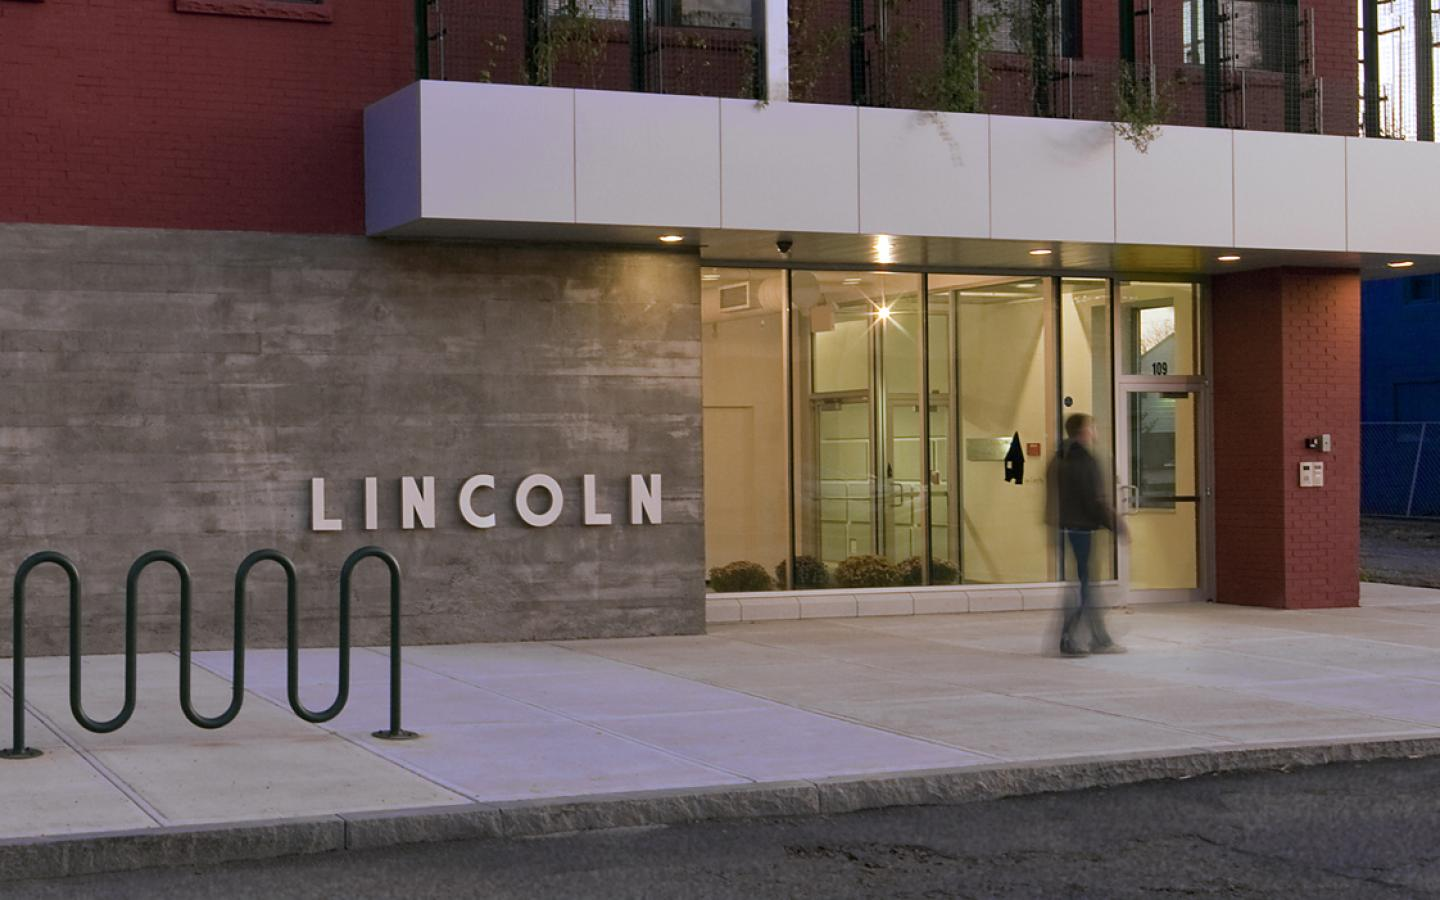 Lincoln Building: Entrance